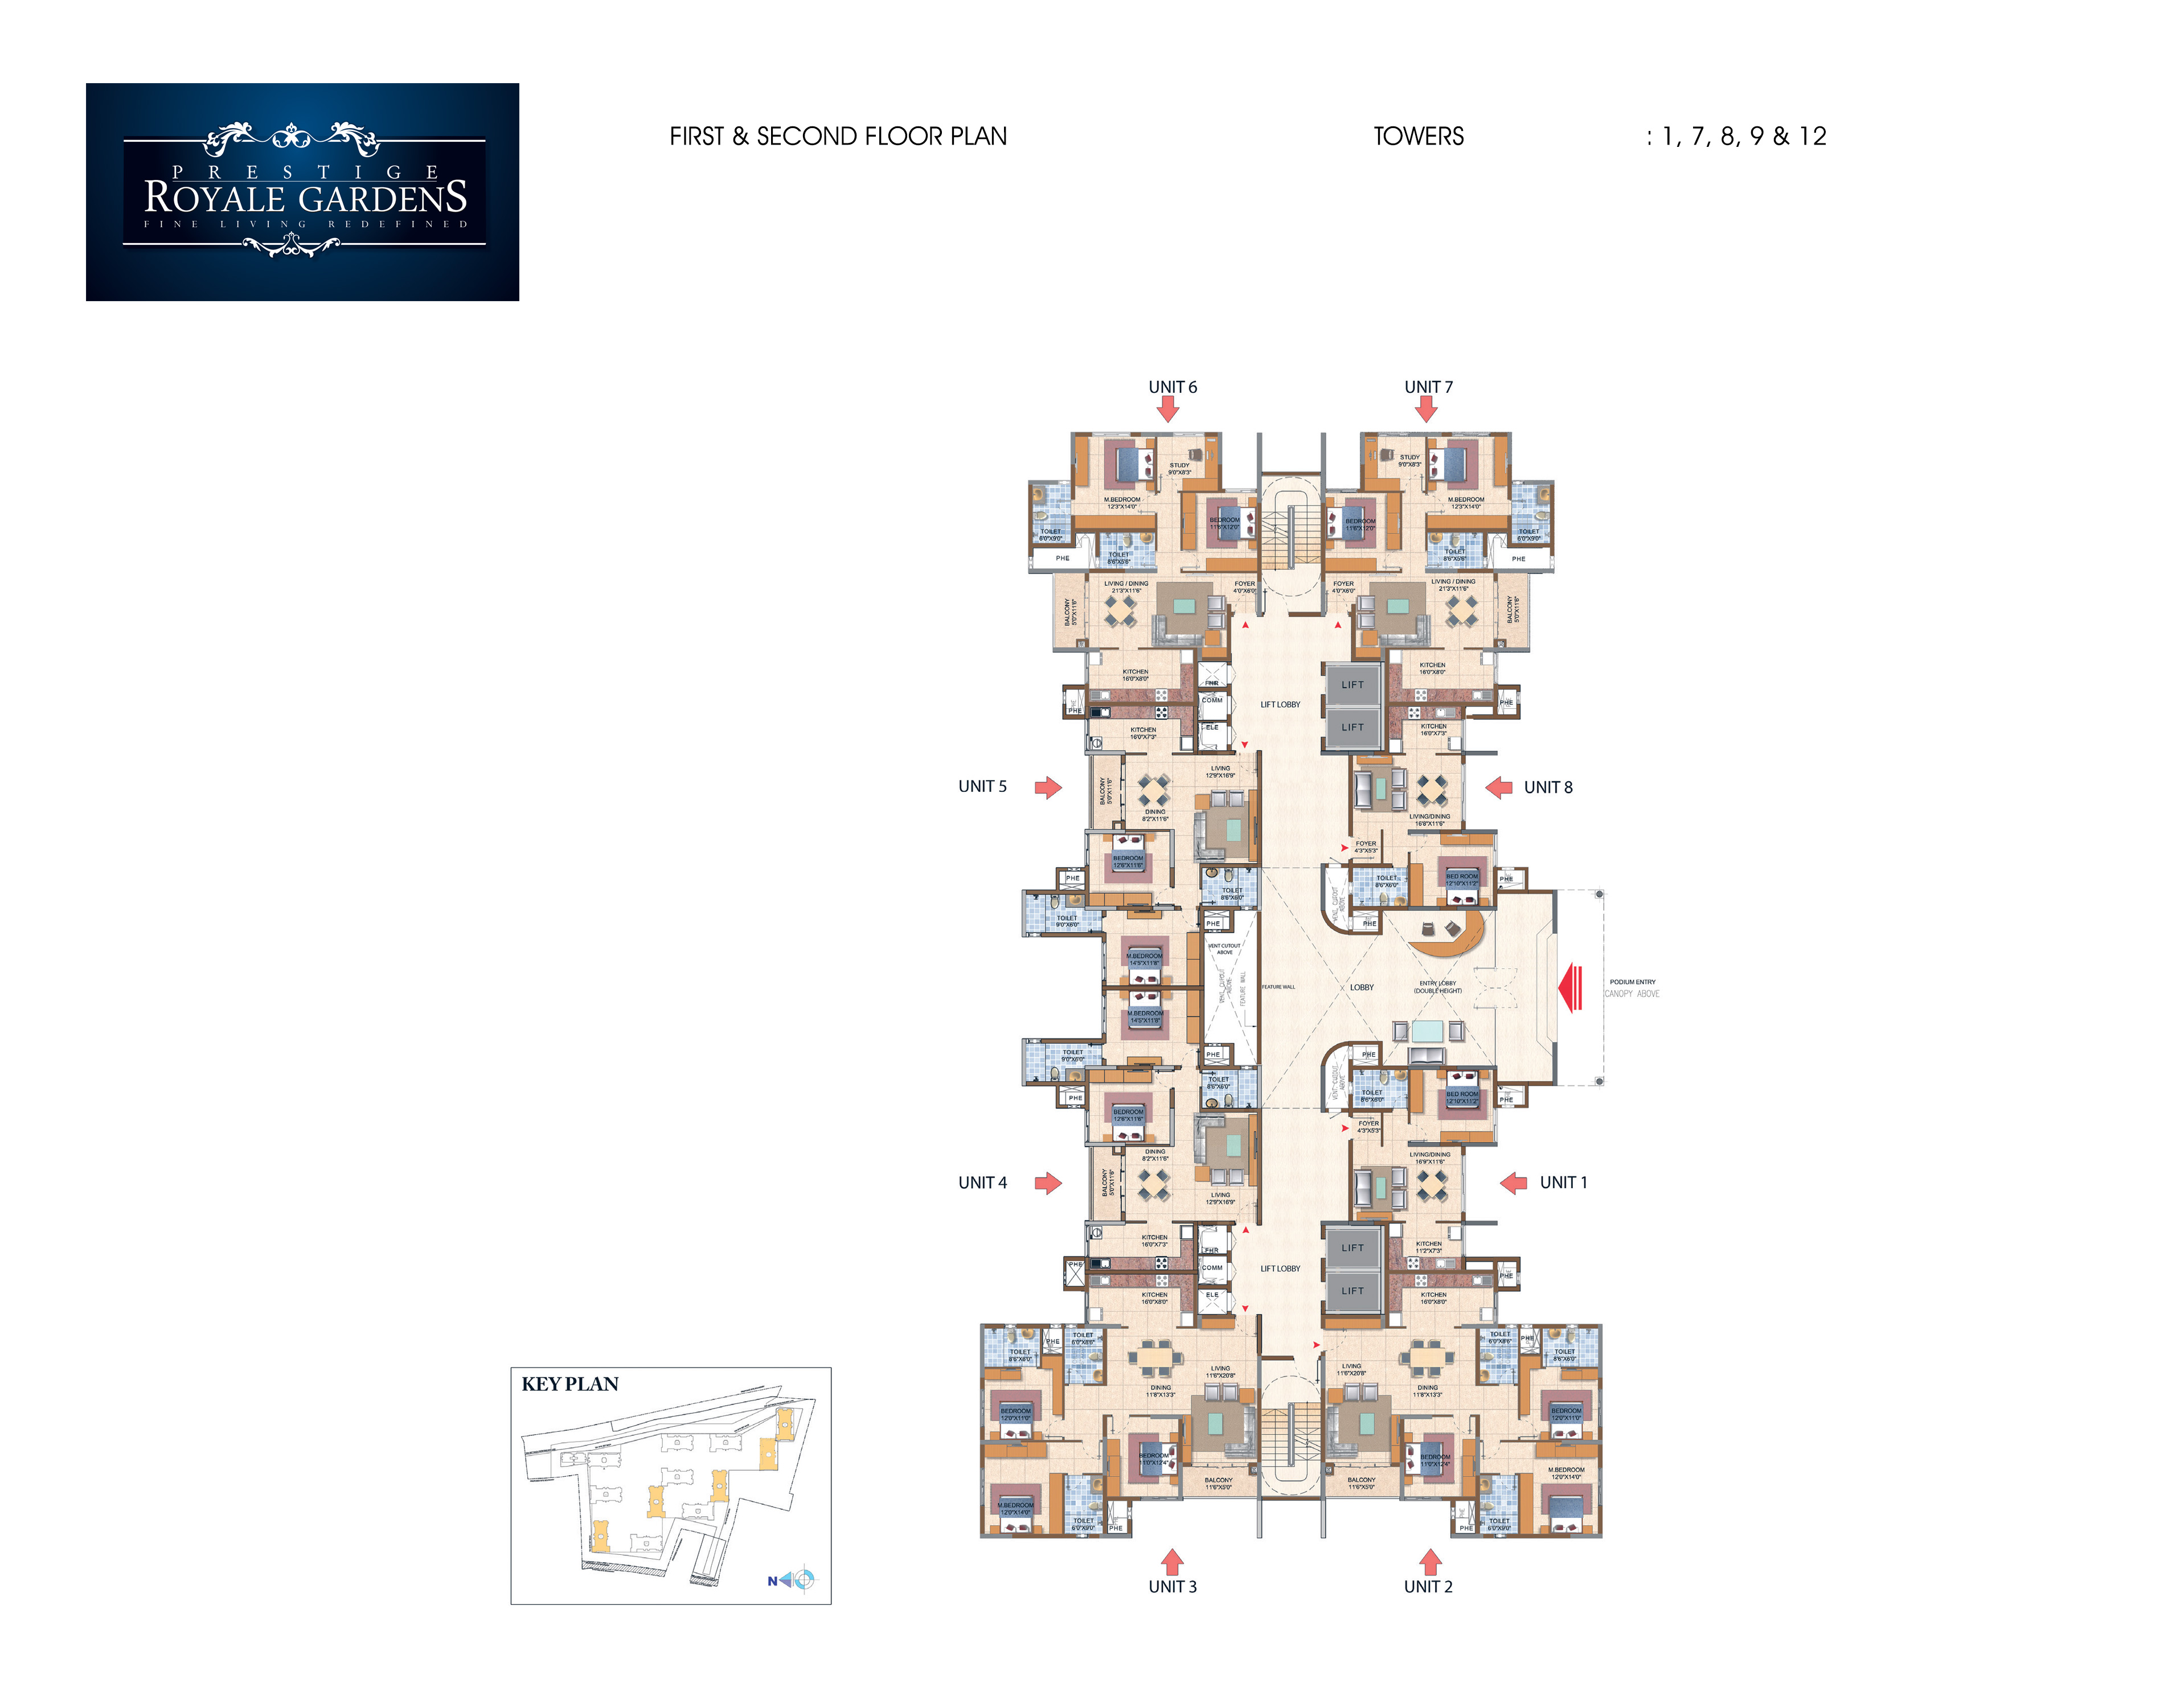 Prestige Royale Gardens - First & Second Floor Plan, Towers 1, 7, 8, 9 & 12